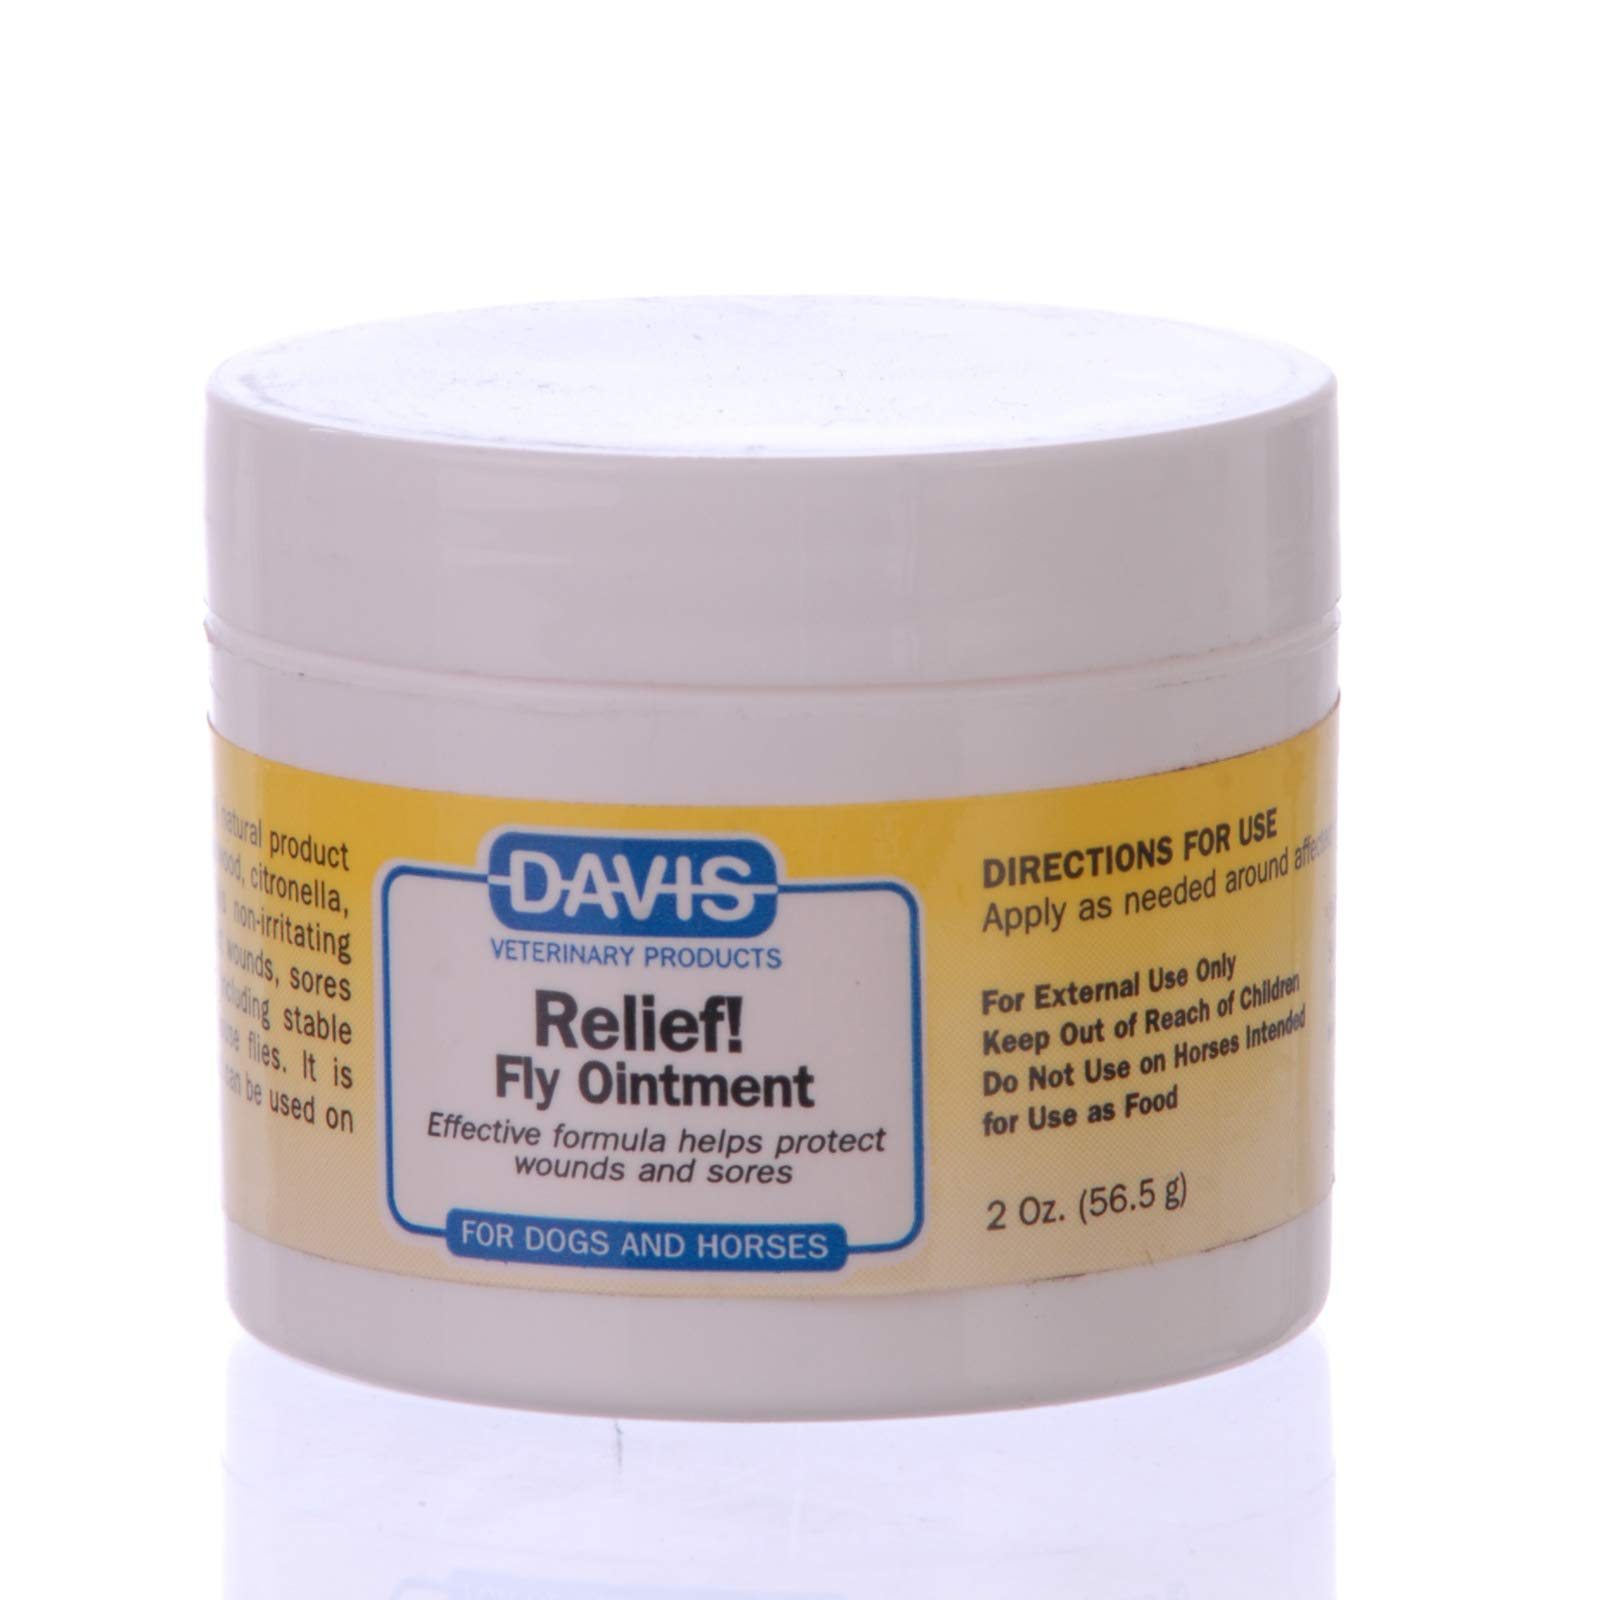 Relief! Fly Ointment.